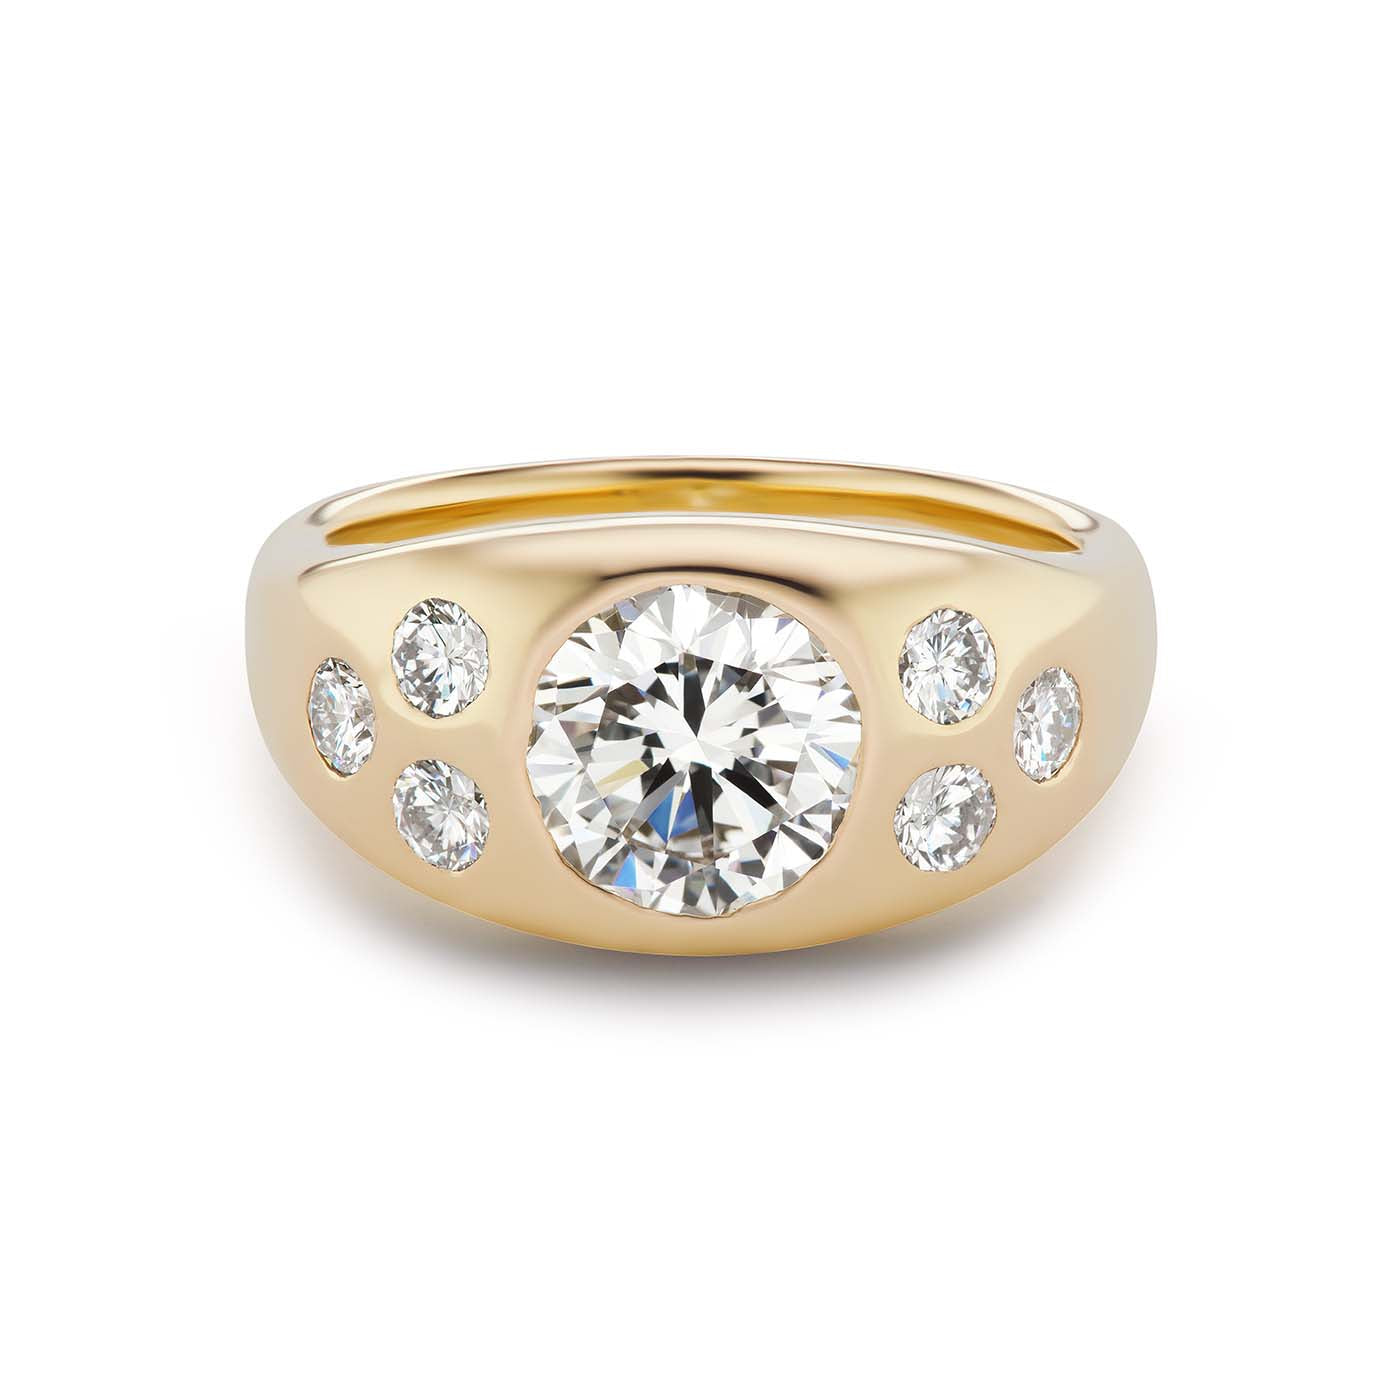 One-of-a-Kind Round Diamond Gypsy with Diamond Accents